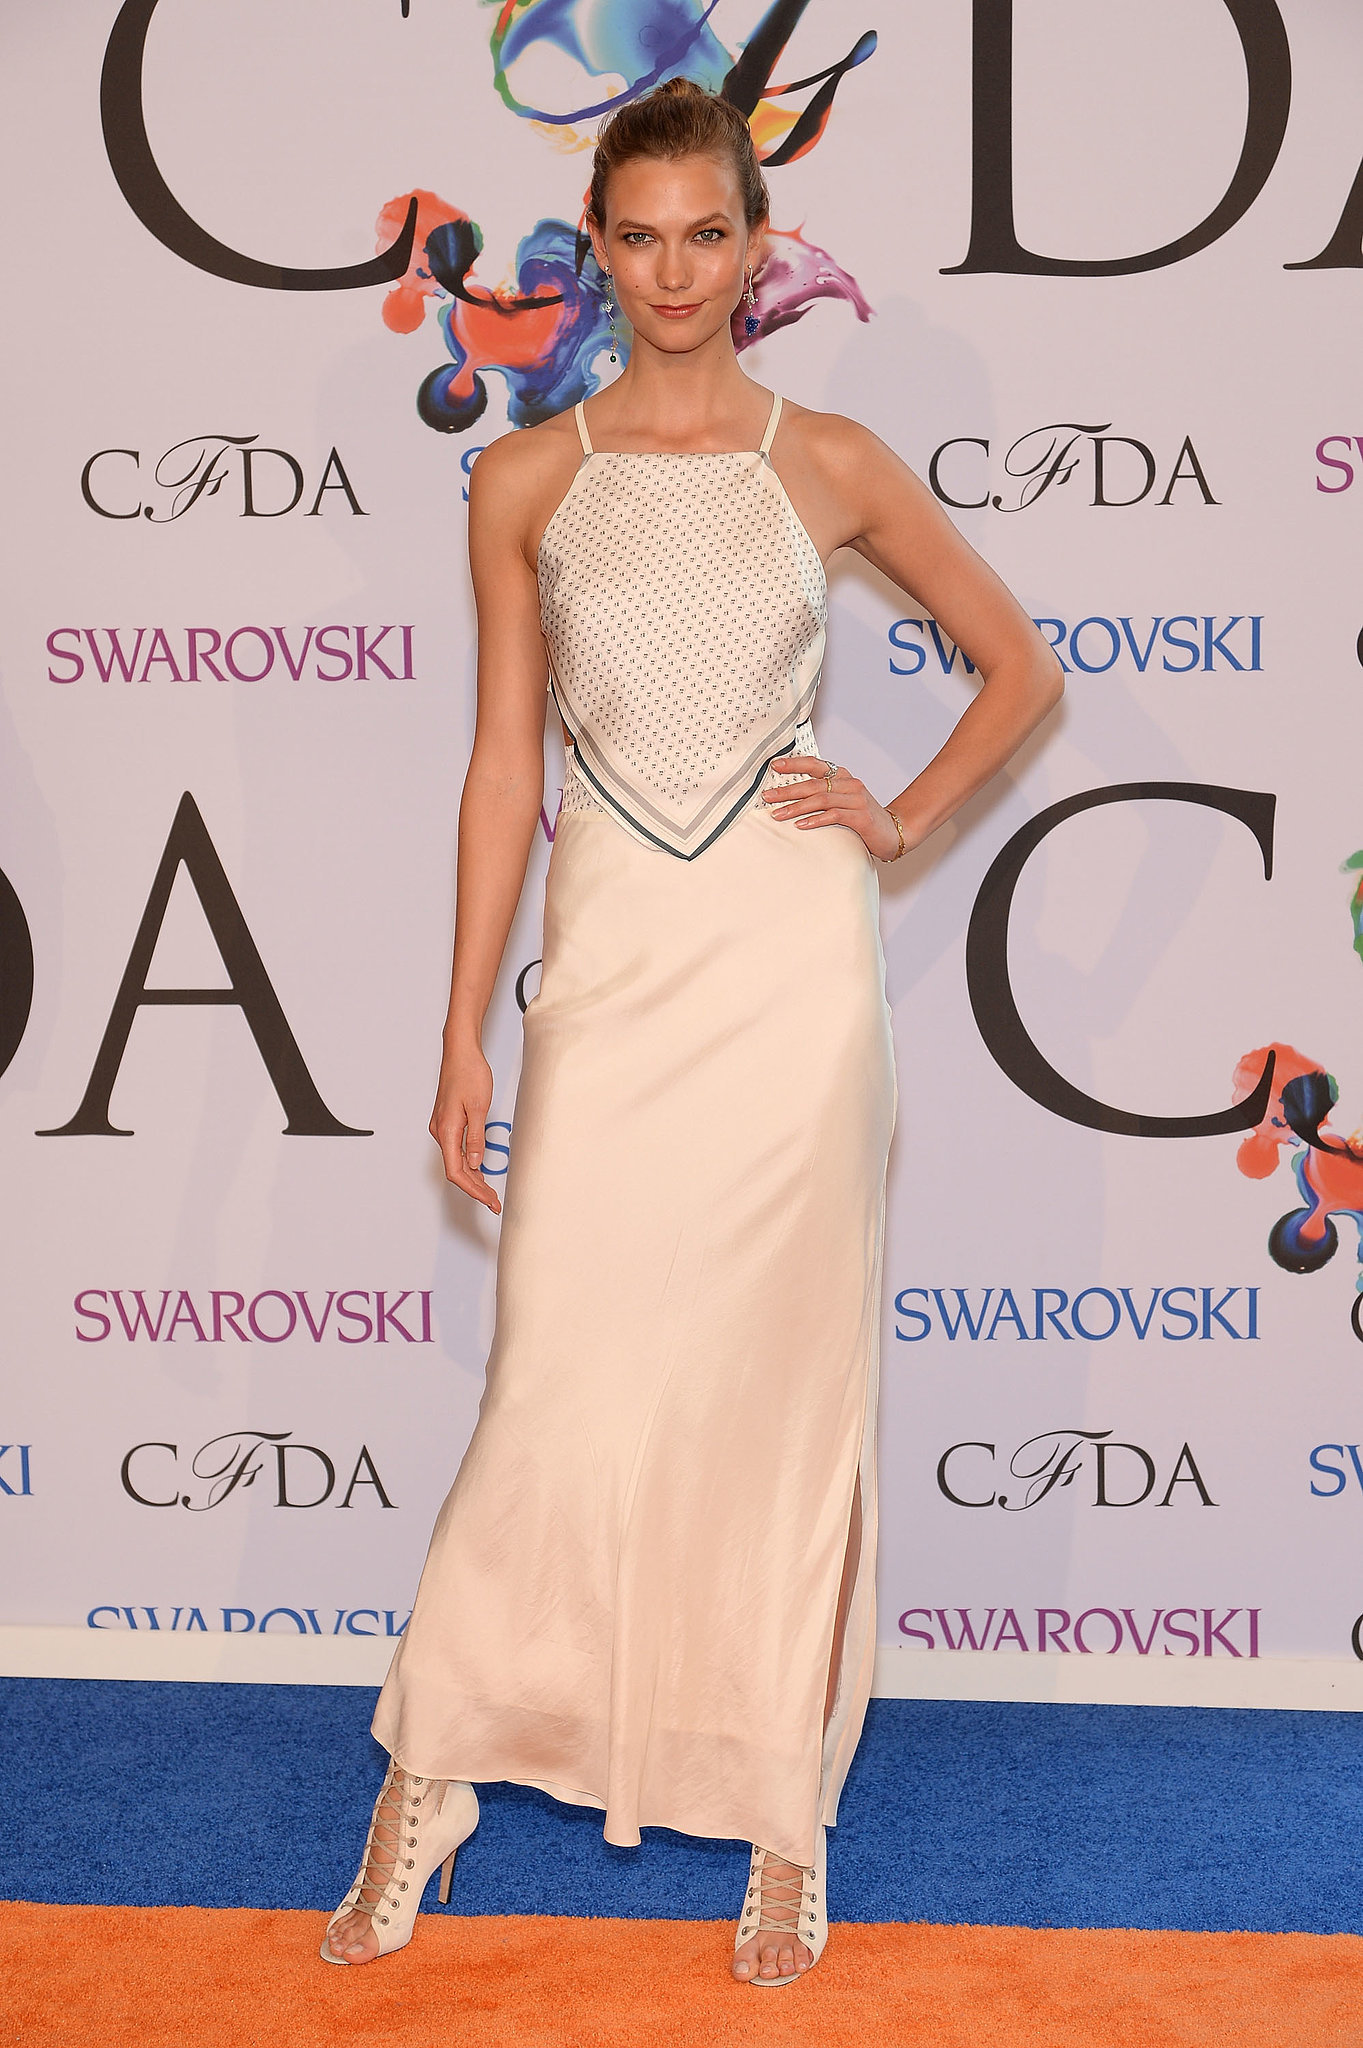 Karlie Kloss at the 2014 CFDA Awards